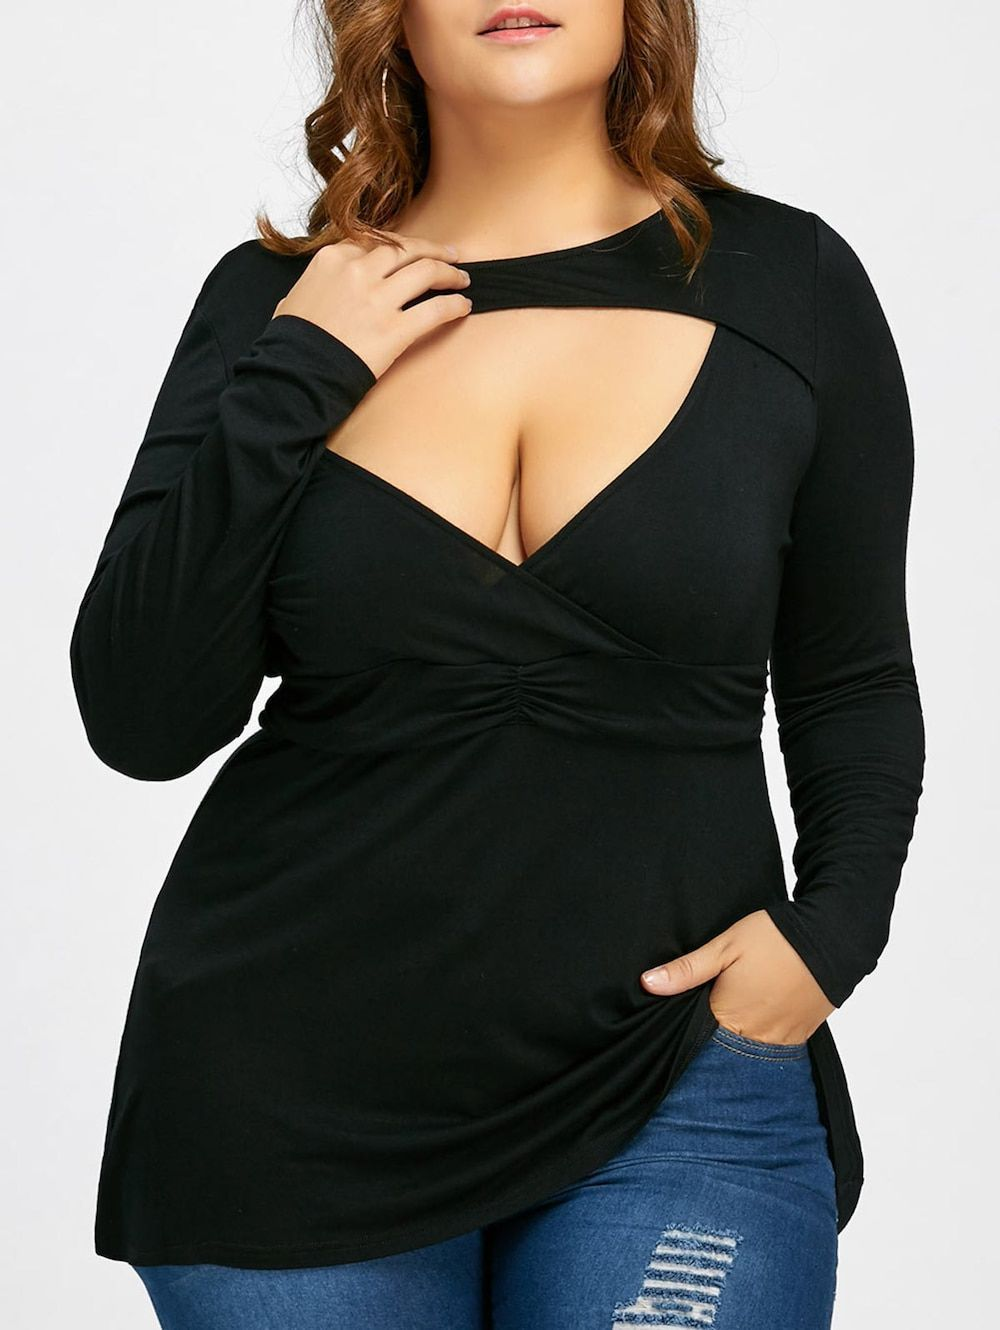 Long sleeve plus size cut out tshirt black xl in plus size t